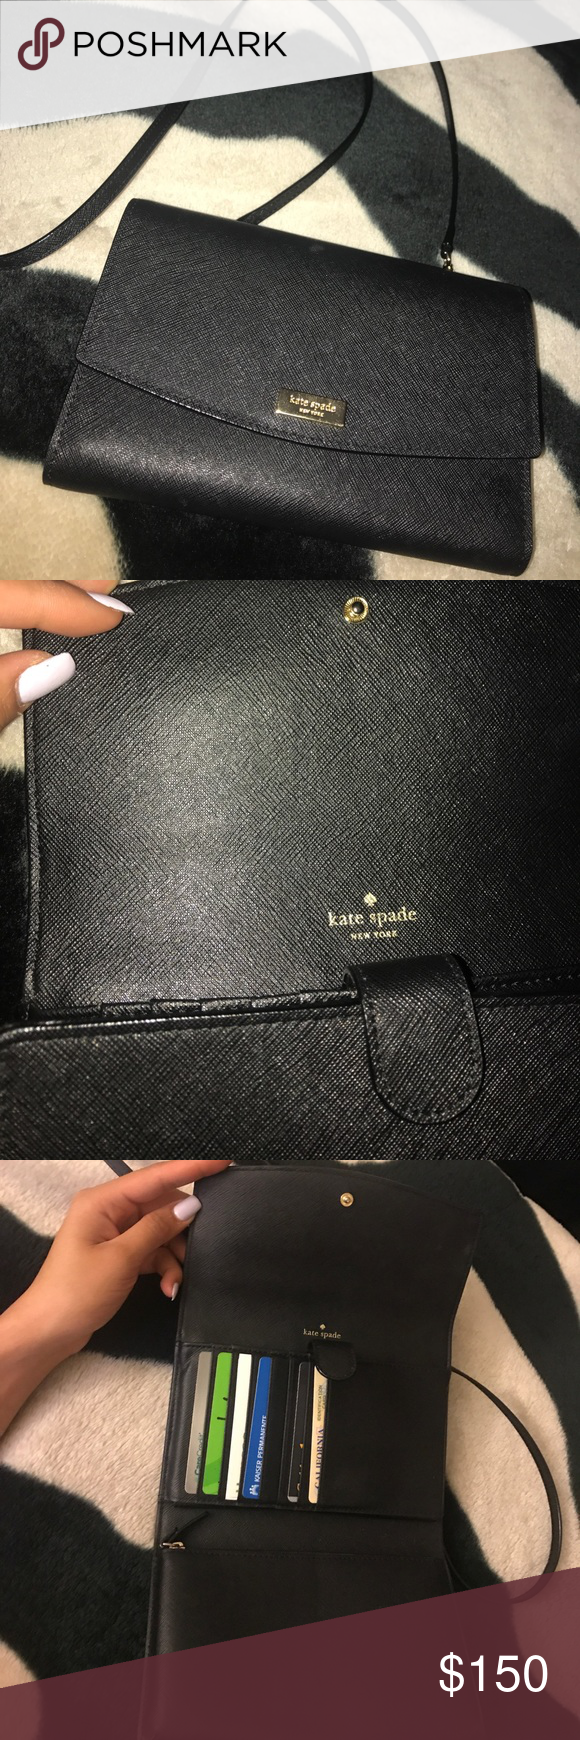 Authentic Kate Spade cross body bag Black leather with gold. Can use as a cross body bag or clutch. kate spade Bags Crossbody Bags